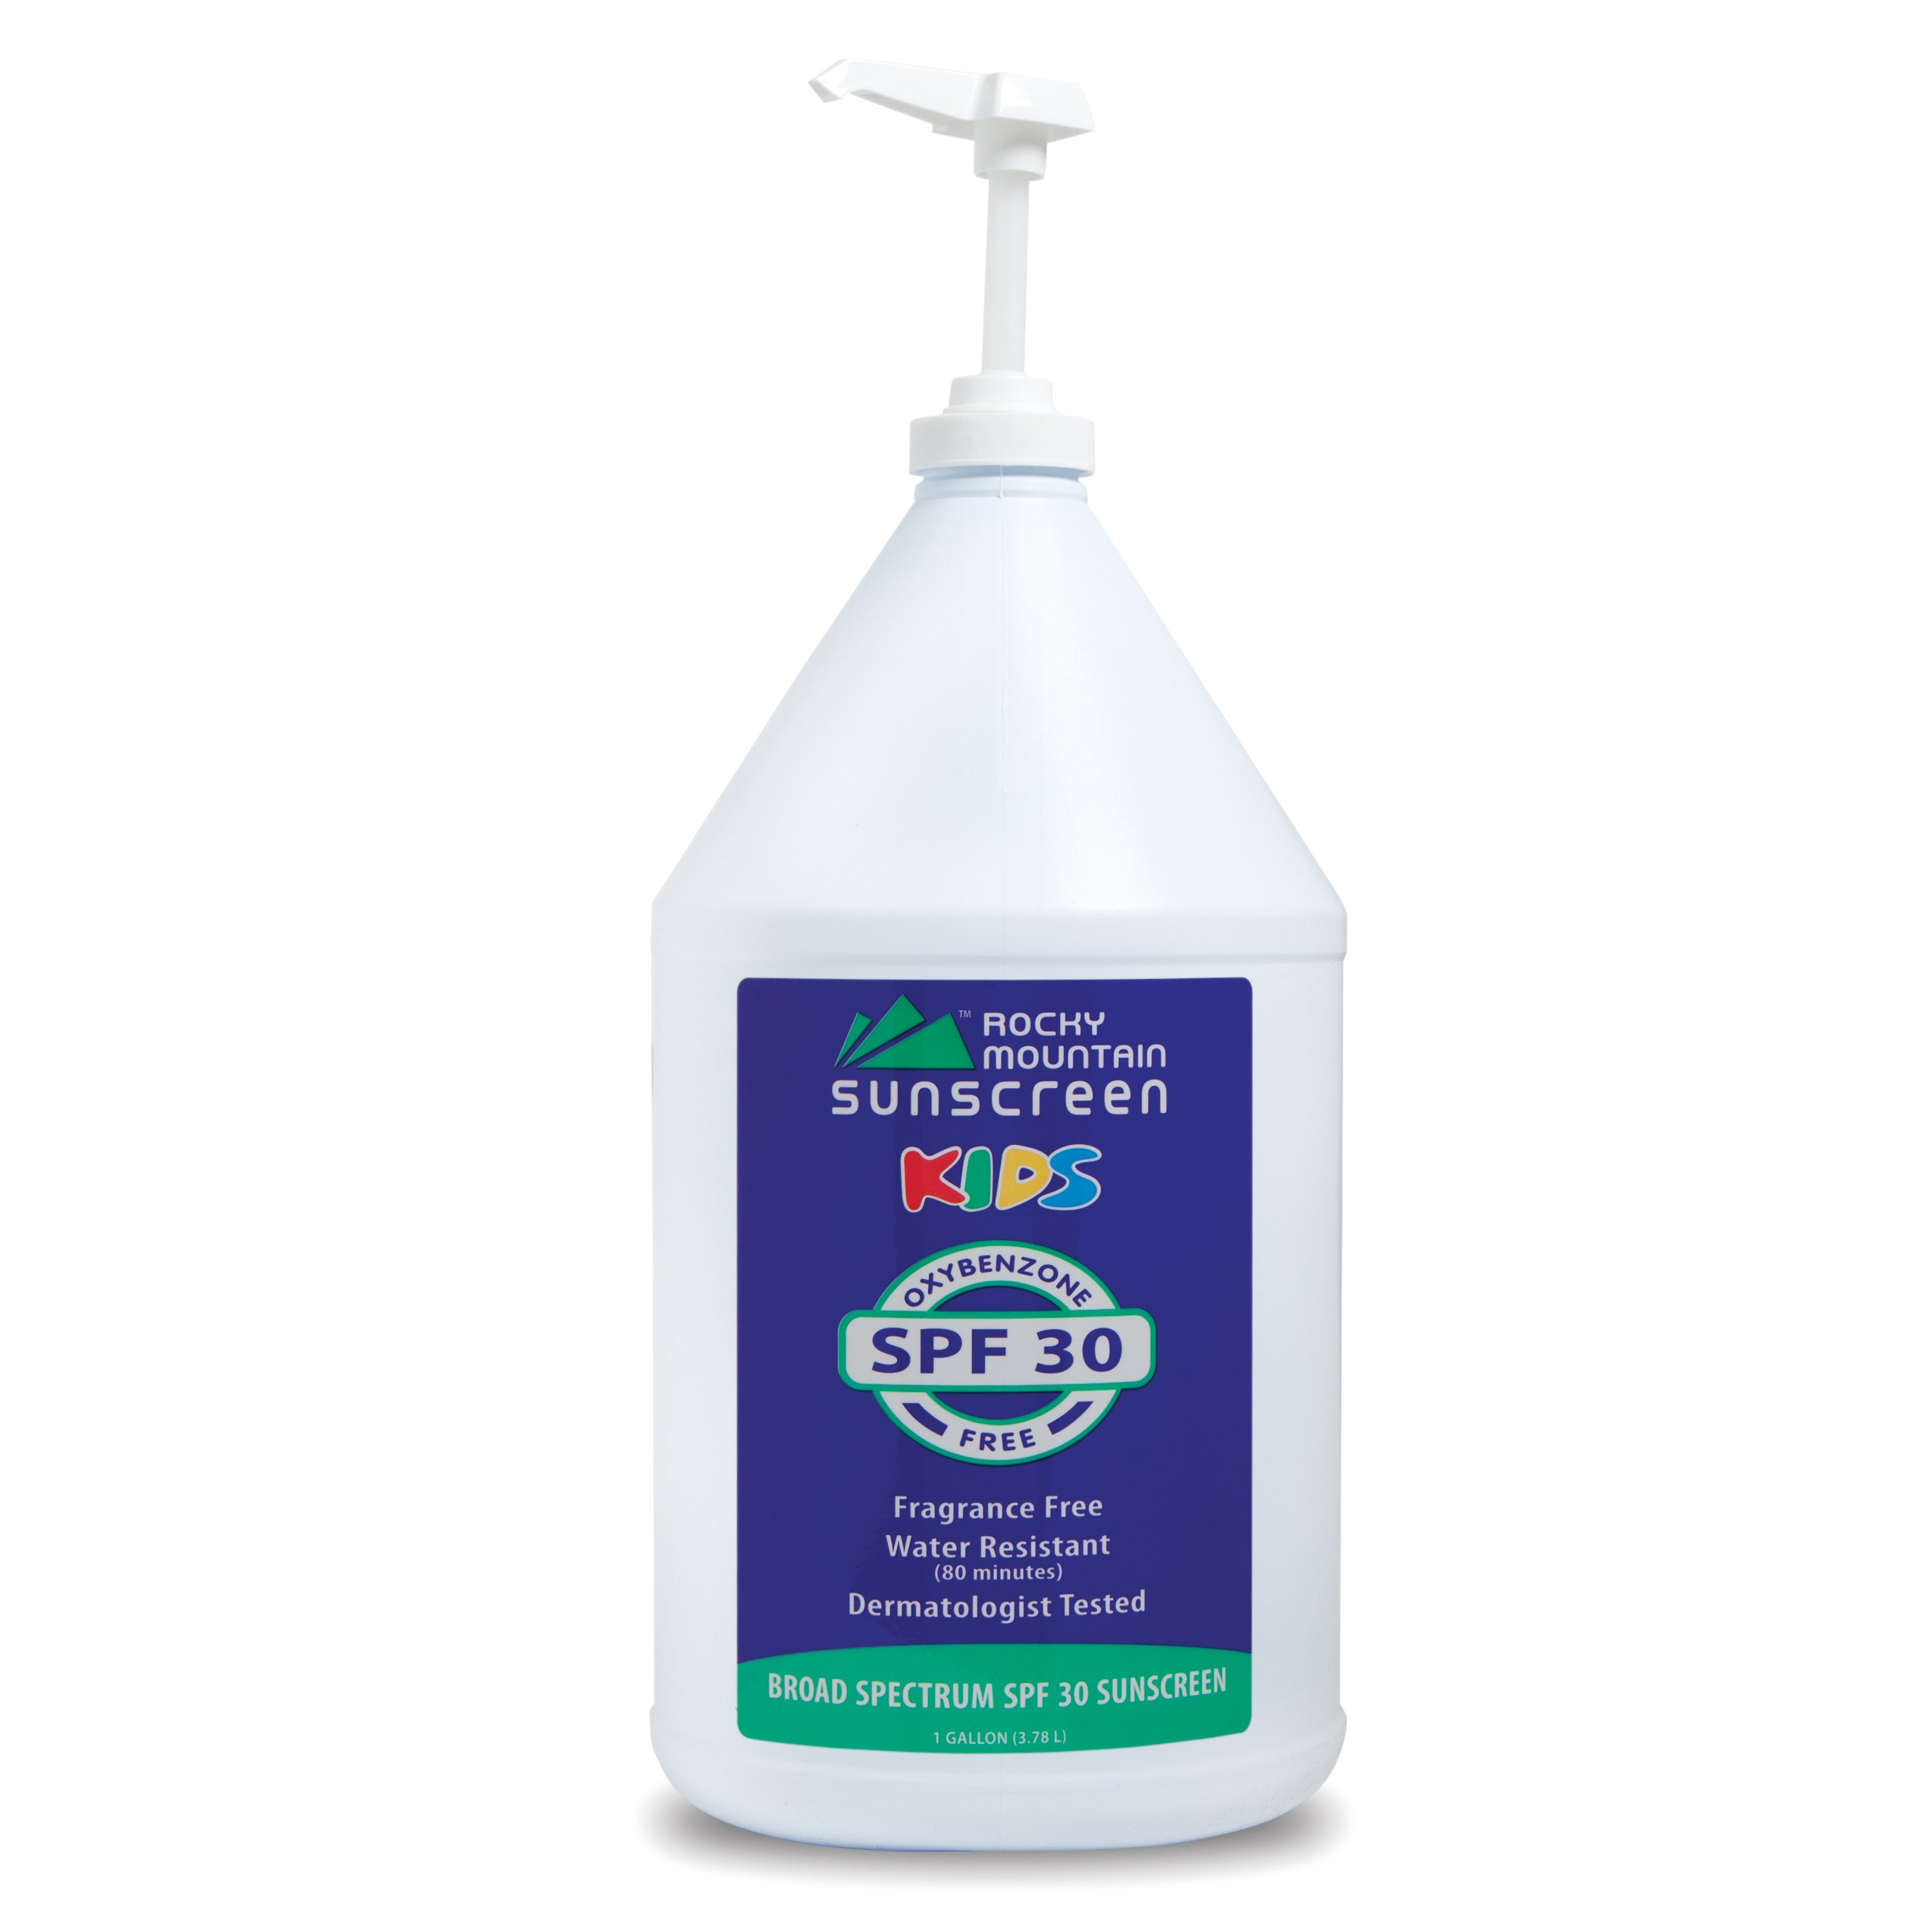 Rocky Mountain Sunscreen - Kids, Gallon, SPF 30 - Oxybenzone Free - Gluten Free - Broad Spectrum and 80 Minute Water Resistant Bulk Lotion